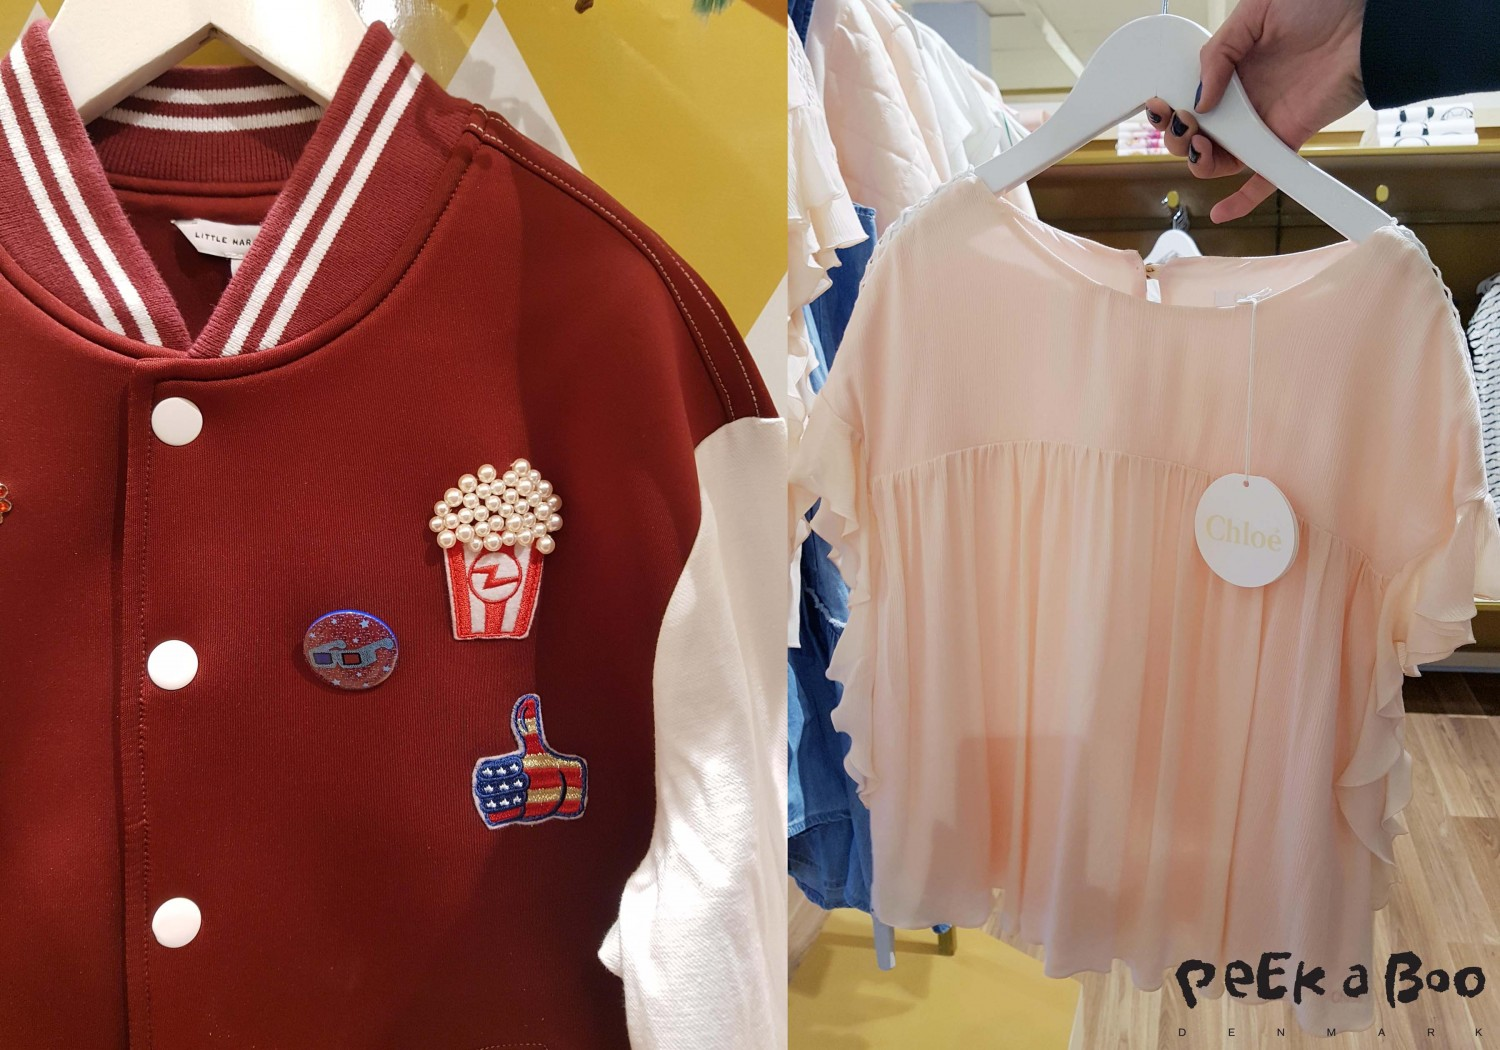 Two other favorits were the feminine top from Chloé and a college jacket from Little Marc with cool badges.